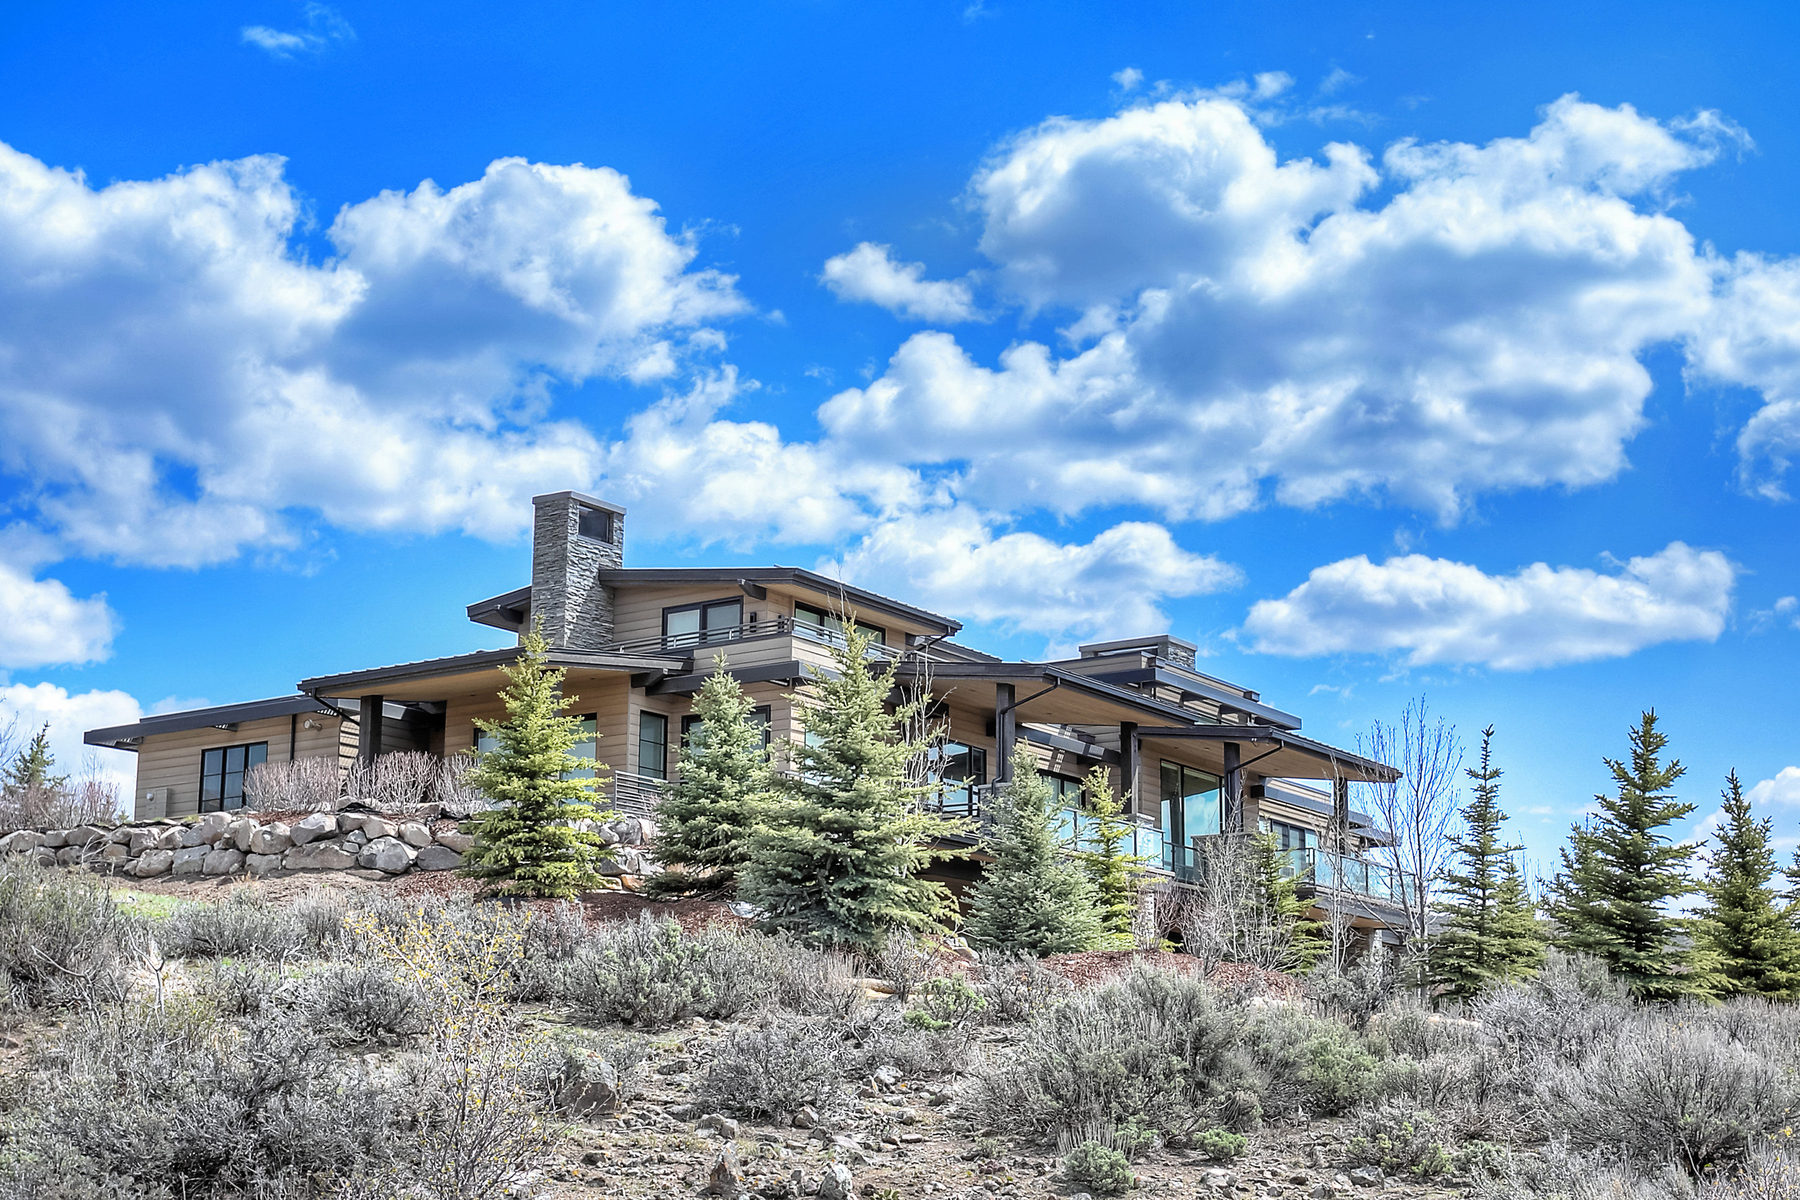 一戸建て のために 売買 アット The Ultimate in Refined Mountain Contemporary 7400 N West Hills Trail Park City, ユタ 84098 アメリカ合衆国